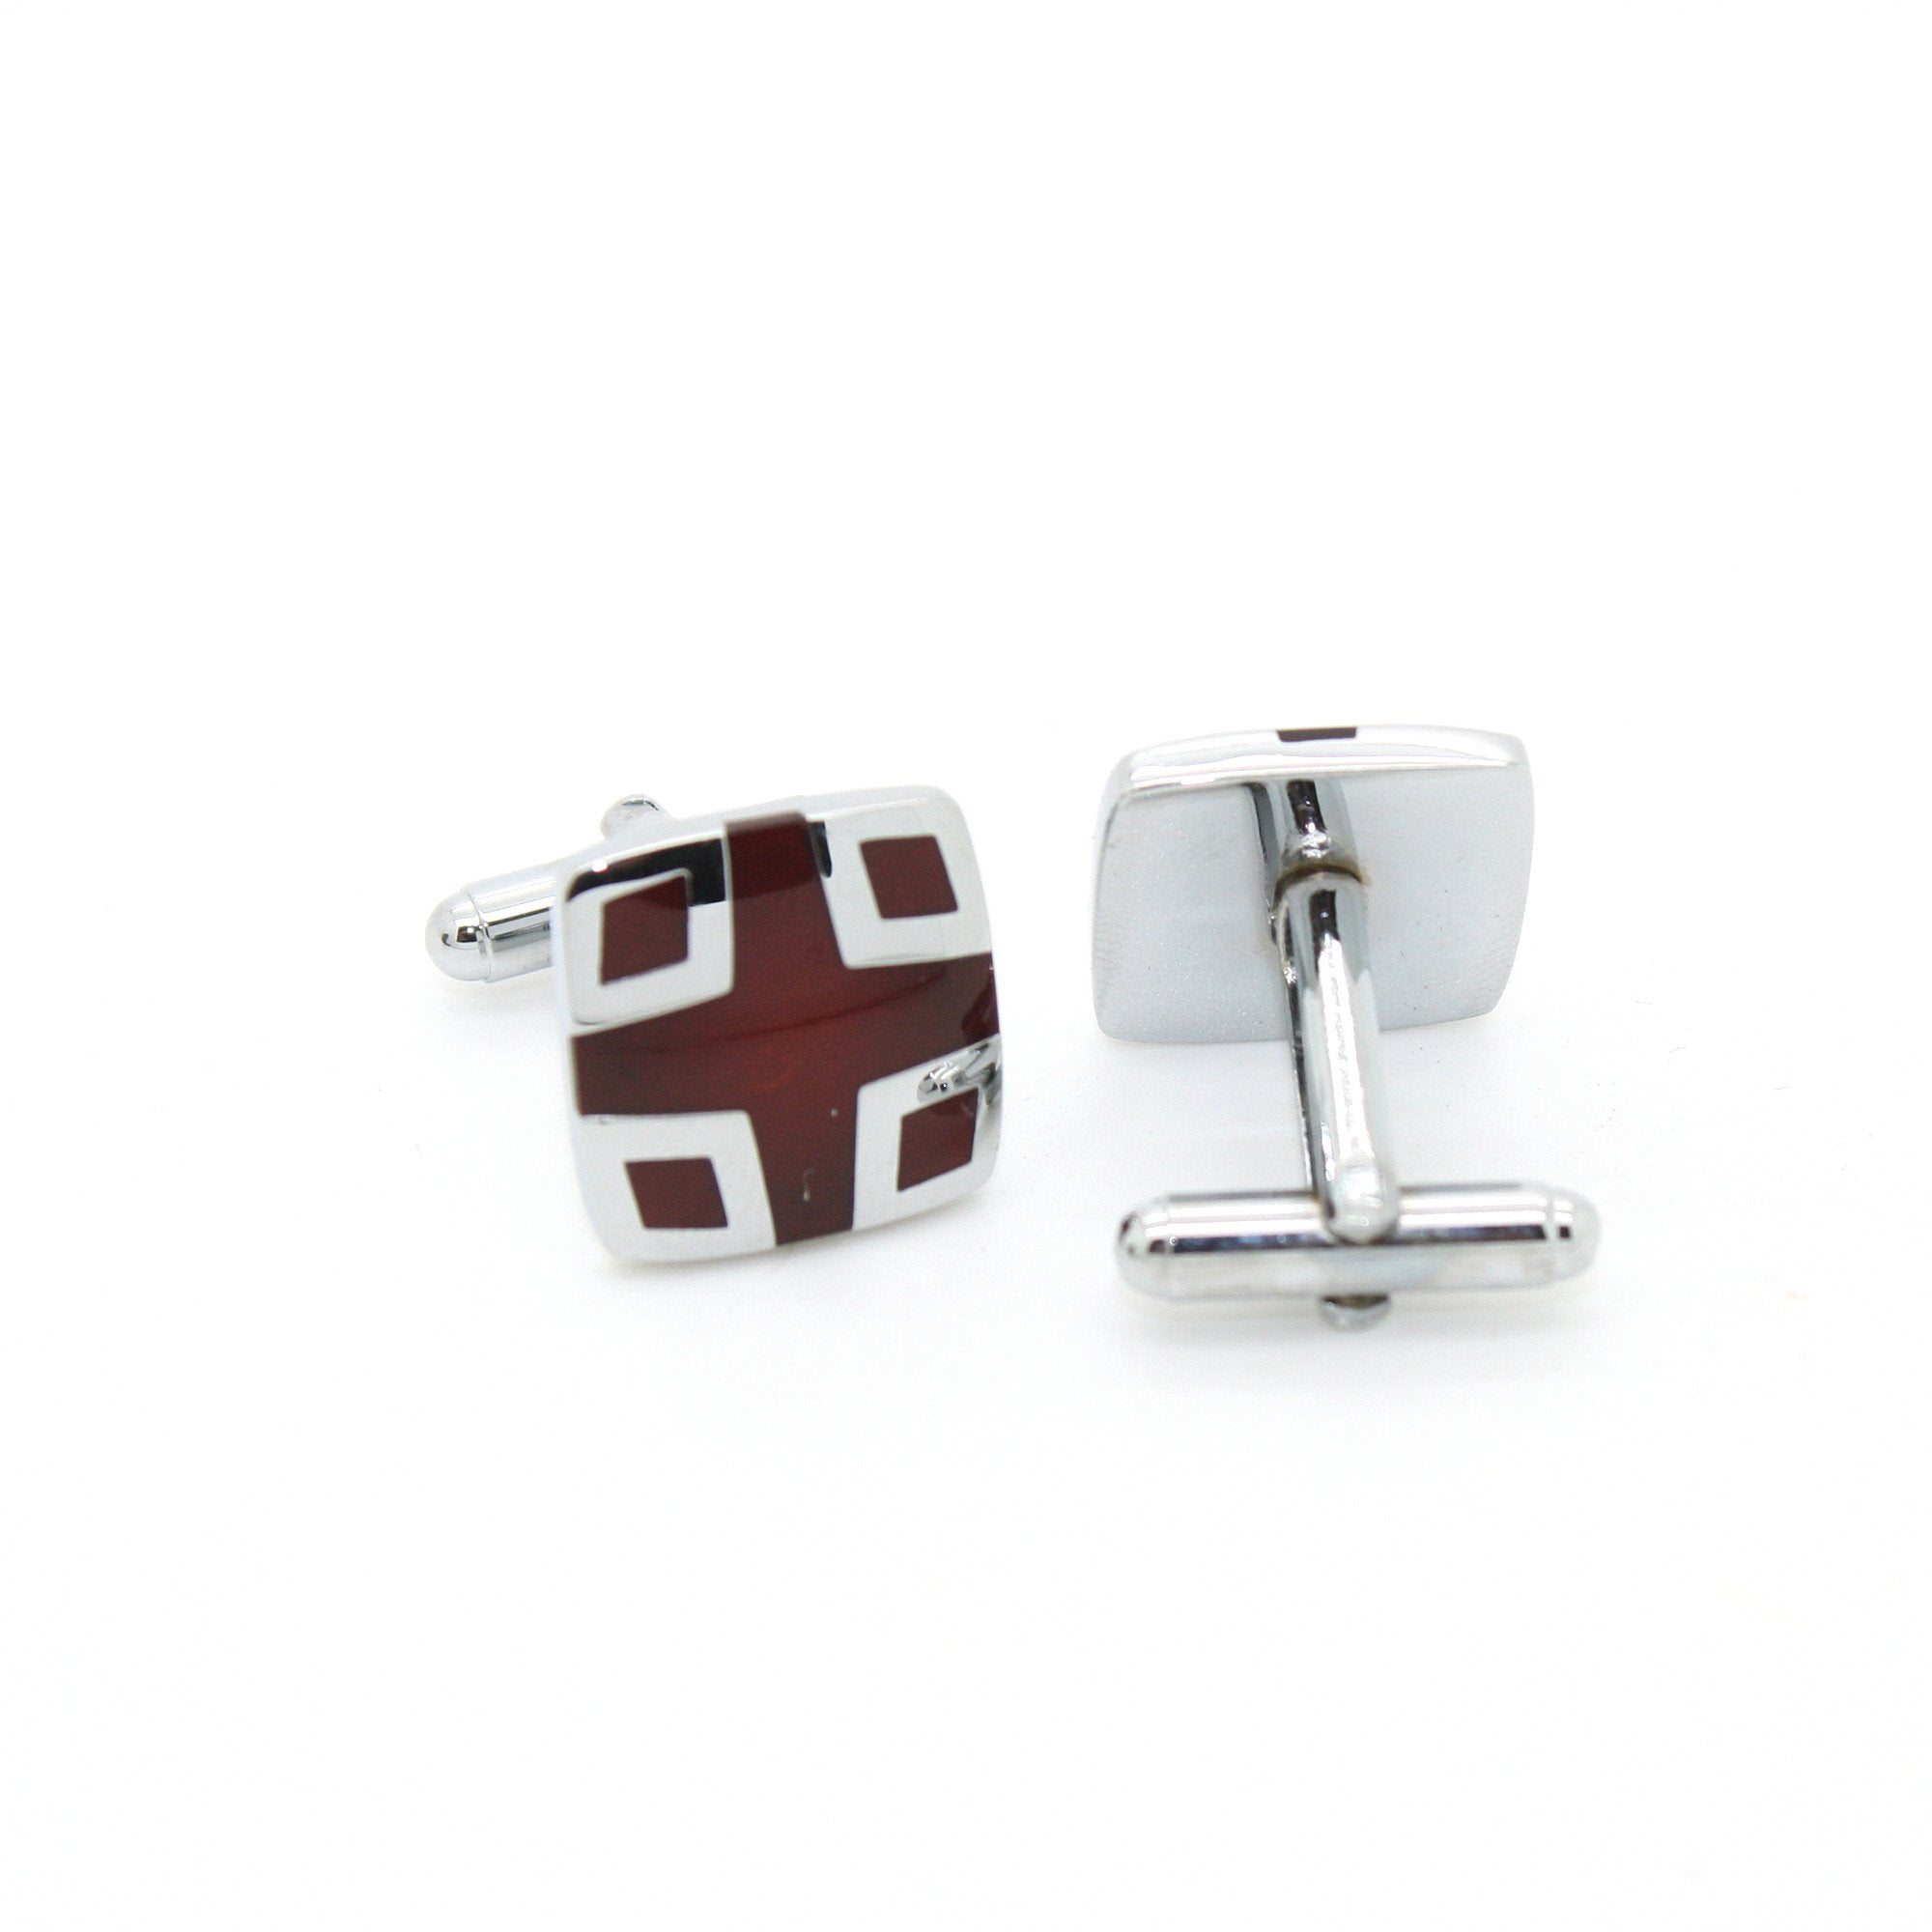 Silvertone Burdungy Cuff Links With Jewelry Box - Giorgio's Menswear